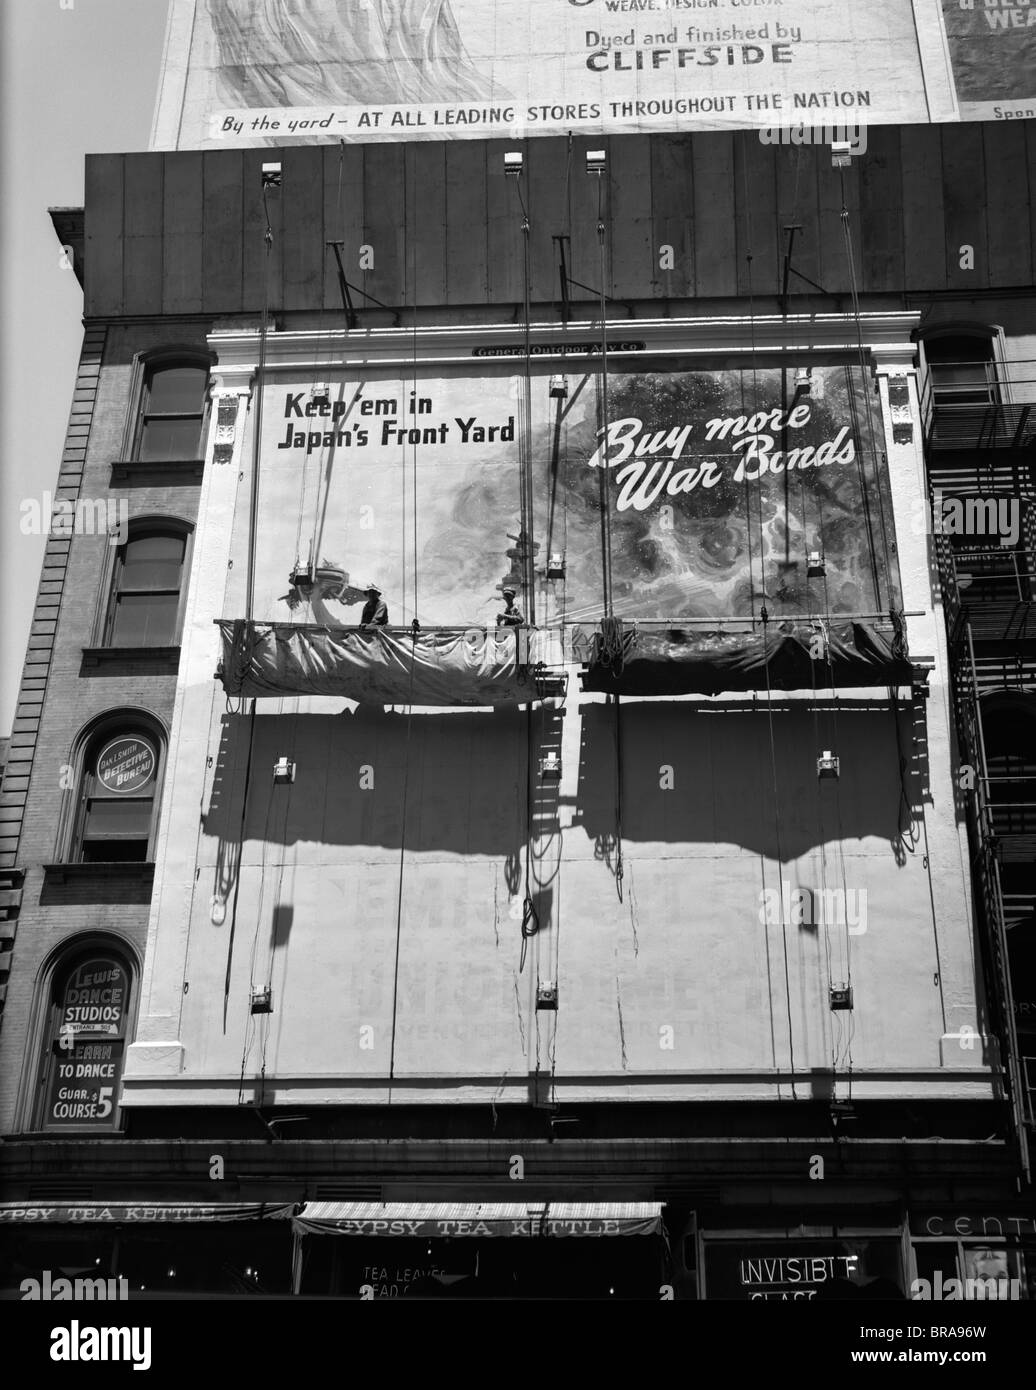 1940s 1945 NEW YORK CITY SIGN PAINTERS CORNER 42nd STREET FIFTH AVENUE PAINTING NEW WAR BONDS SIGN FROM SCAFFOLD - Stock Image